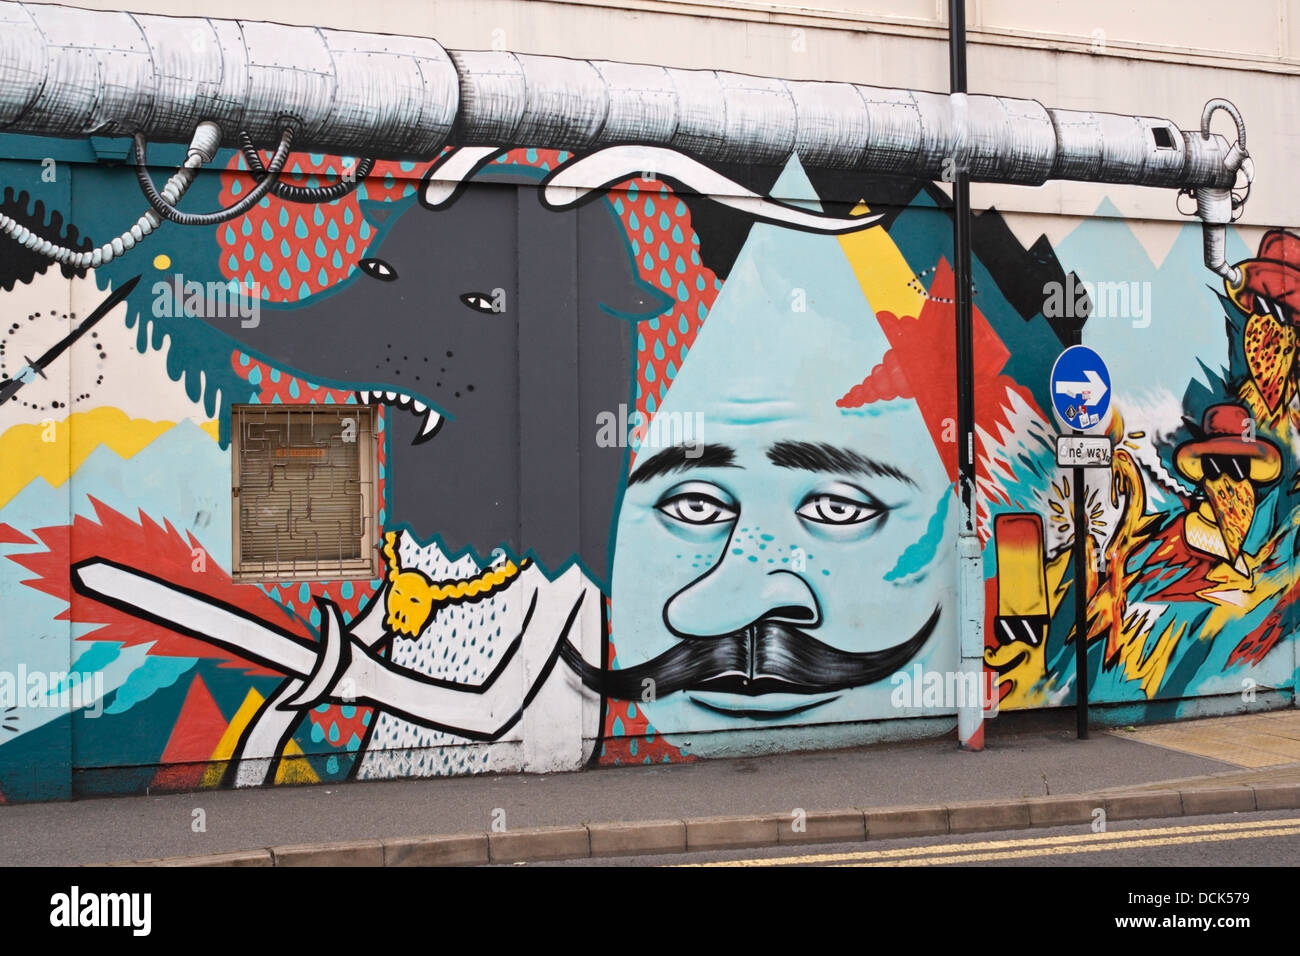 Street art graffiti on the side of a building in sheffield stock image